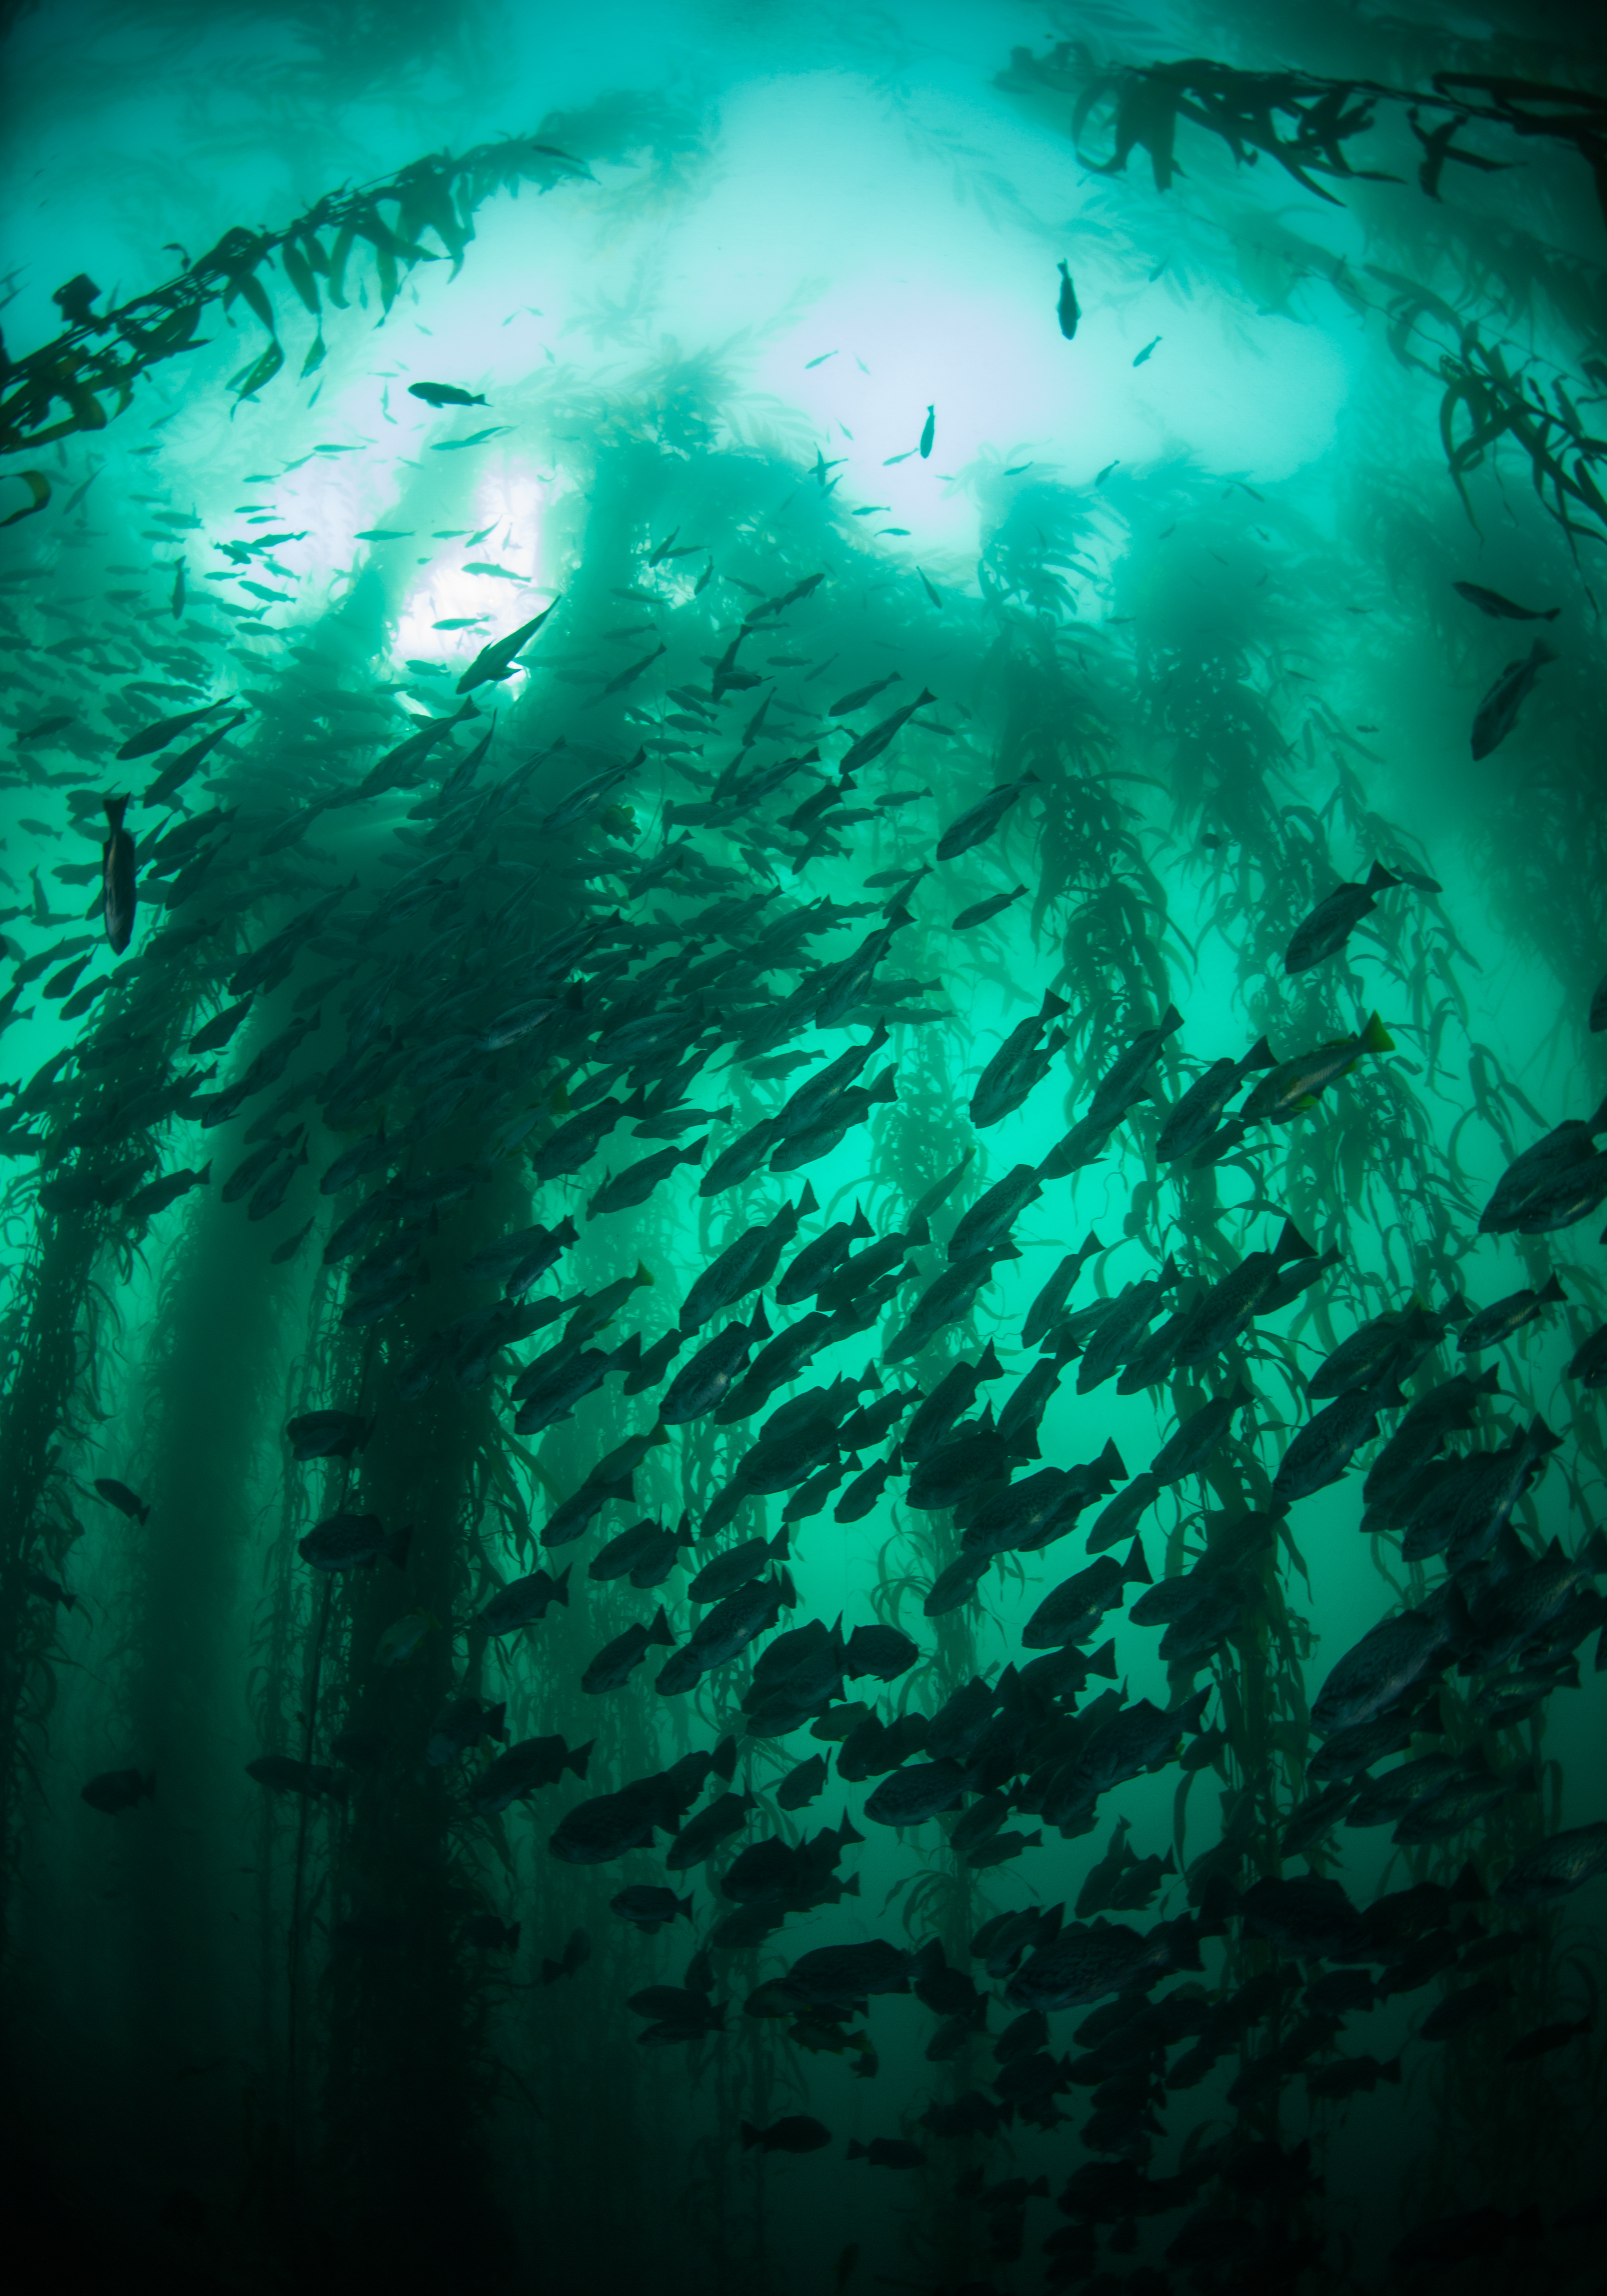 Kelp forest. Photo Credit: Michael Langhans